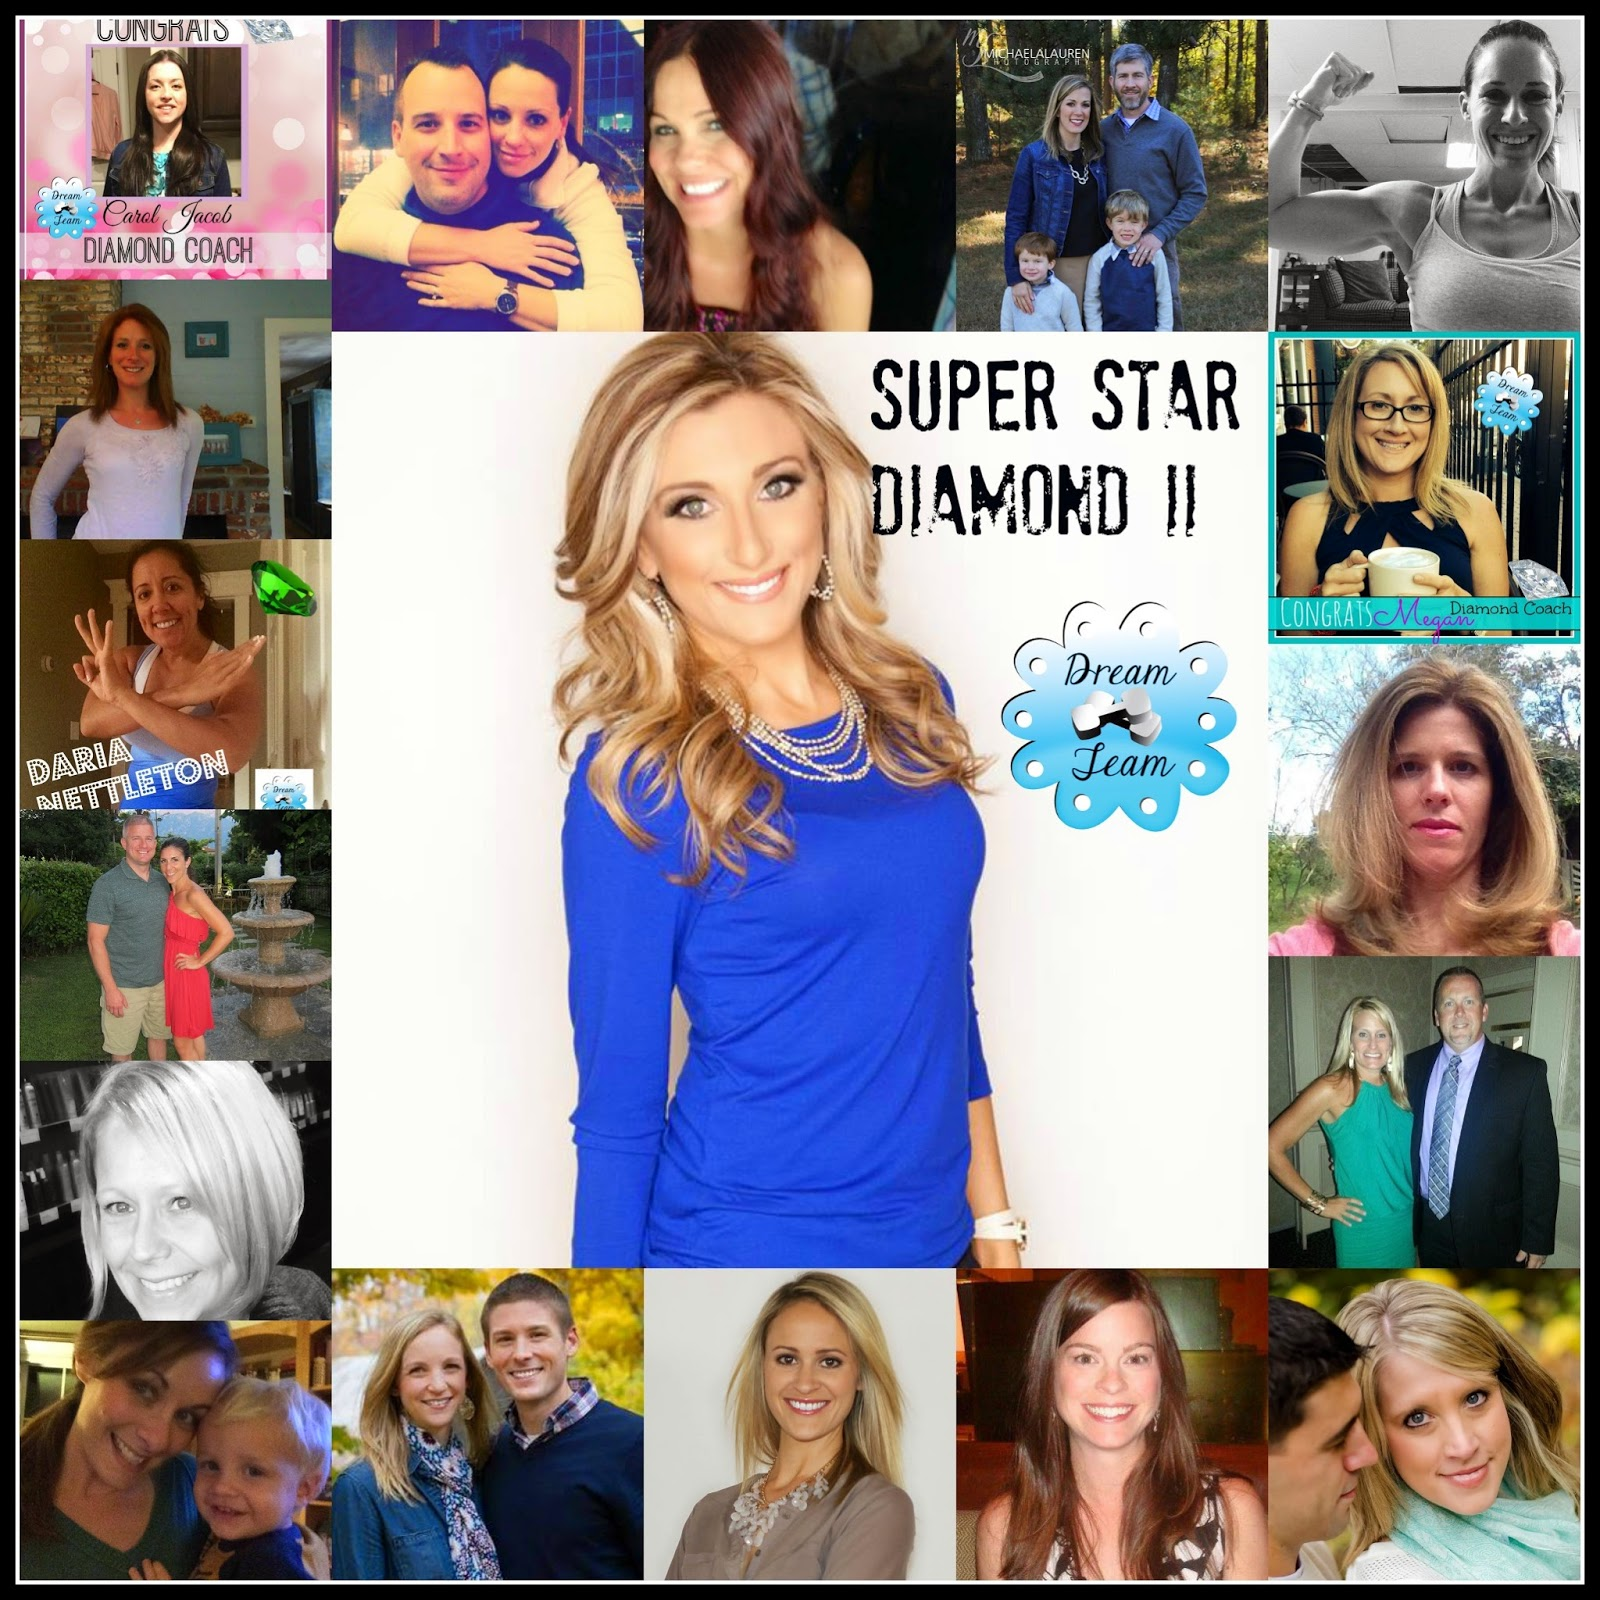 Super Star Diamond II, Team Beachbody Coach, Melanie MItro, Pittsburgh Coach, Elite 10, Top Coach, Mom, Beachbody, 21 Day Fix, Insanity Max 30